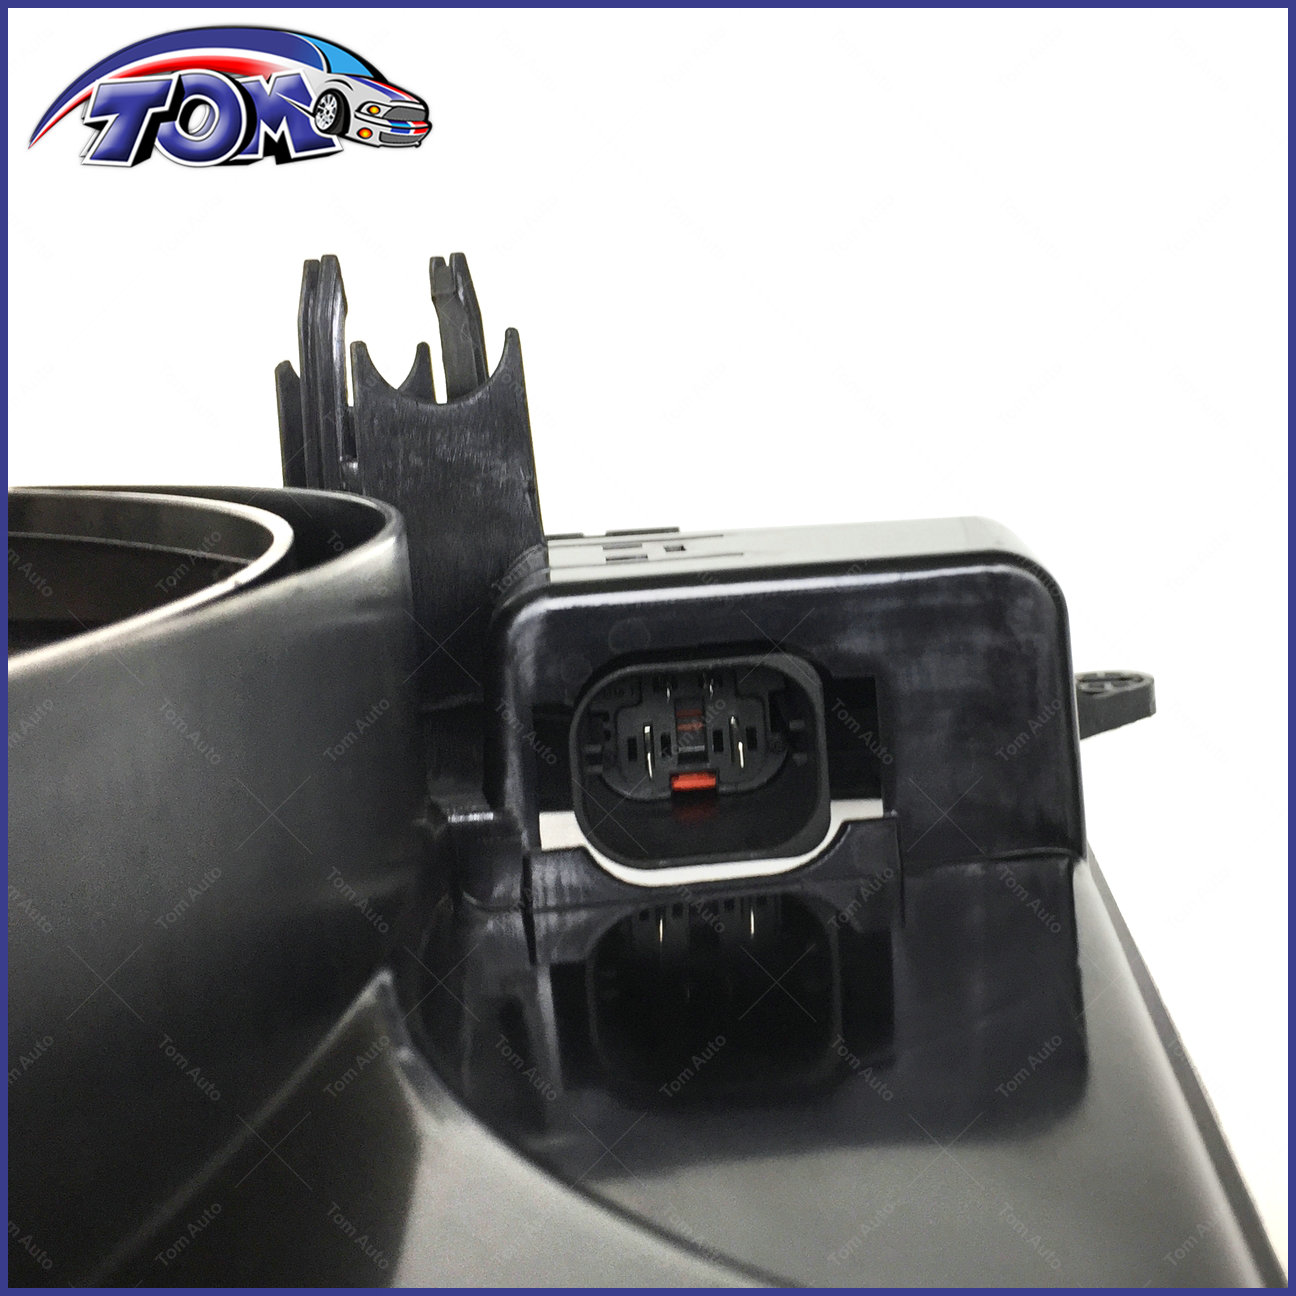 Radiator Cooling Fan Assembly For Mercedes Benz Ml350 Ml450 Ml500 2005 Parts Always Free Shipping With Your Tom Auto Orders